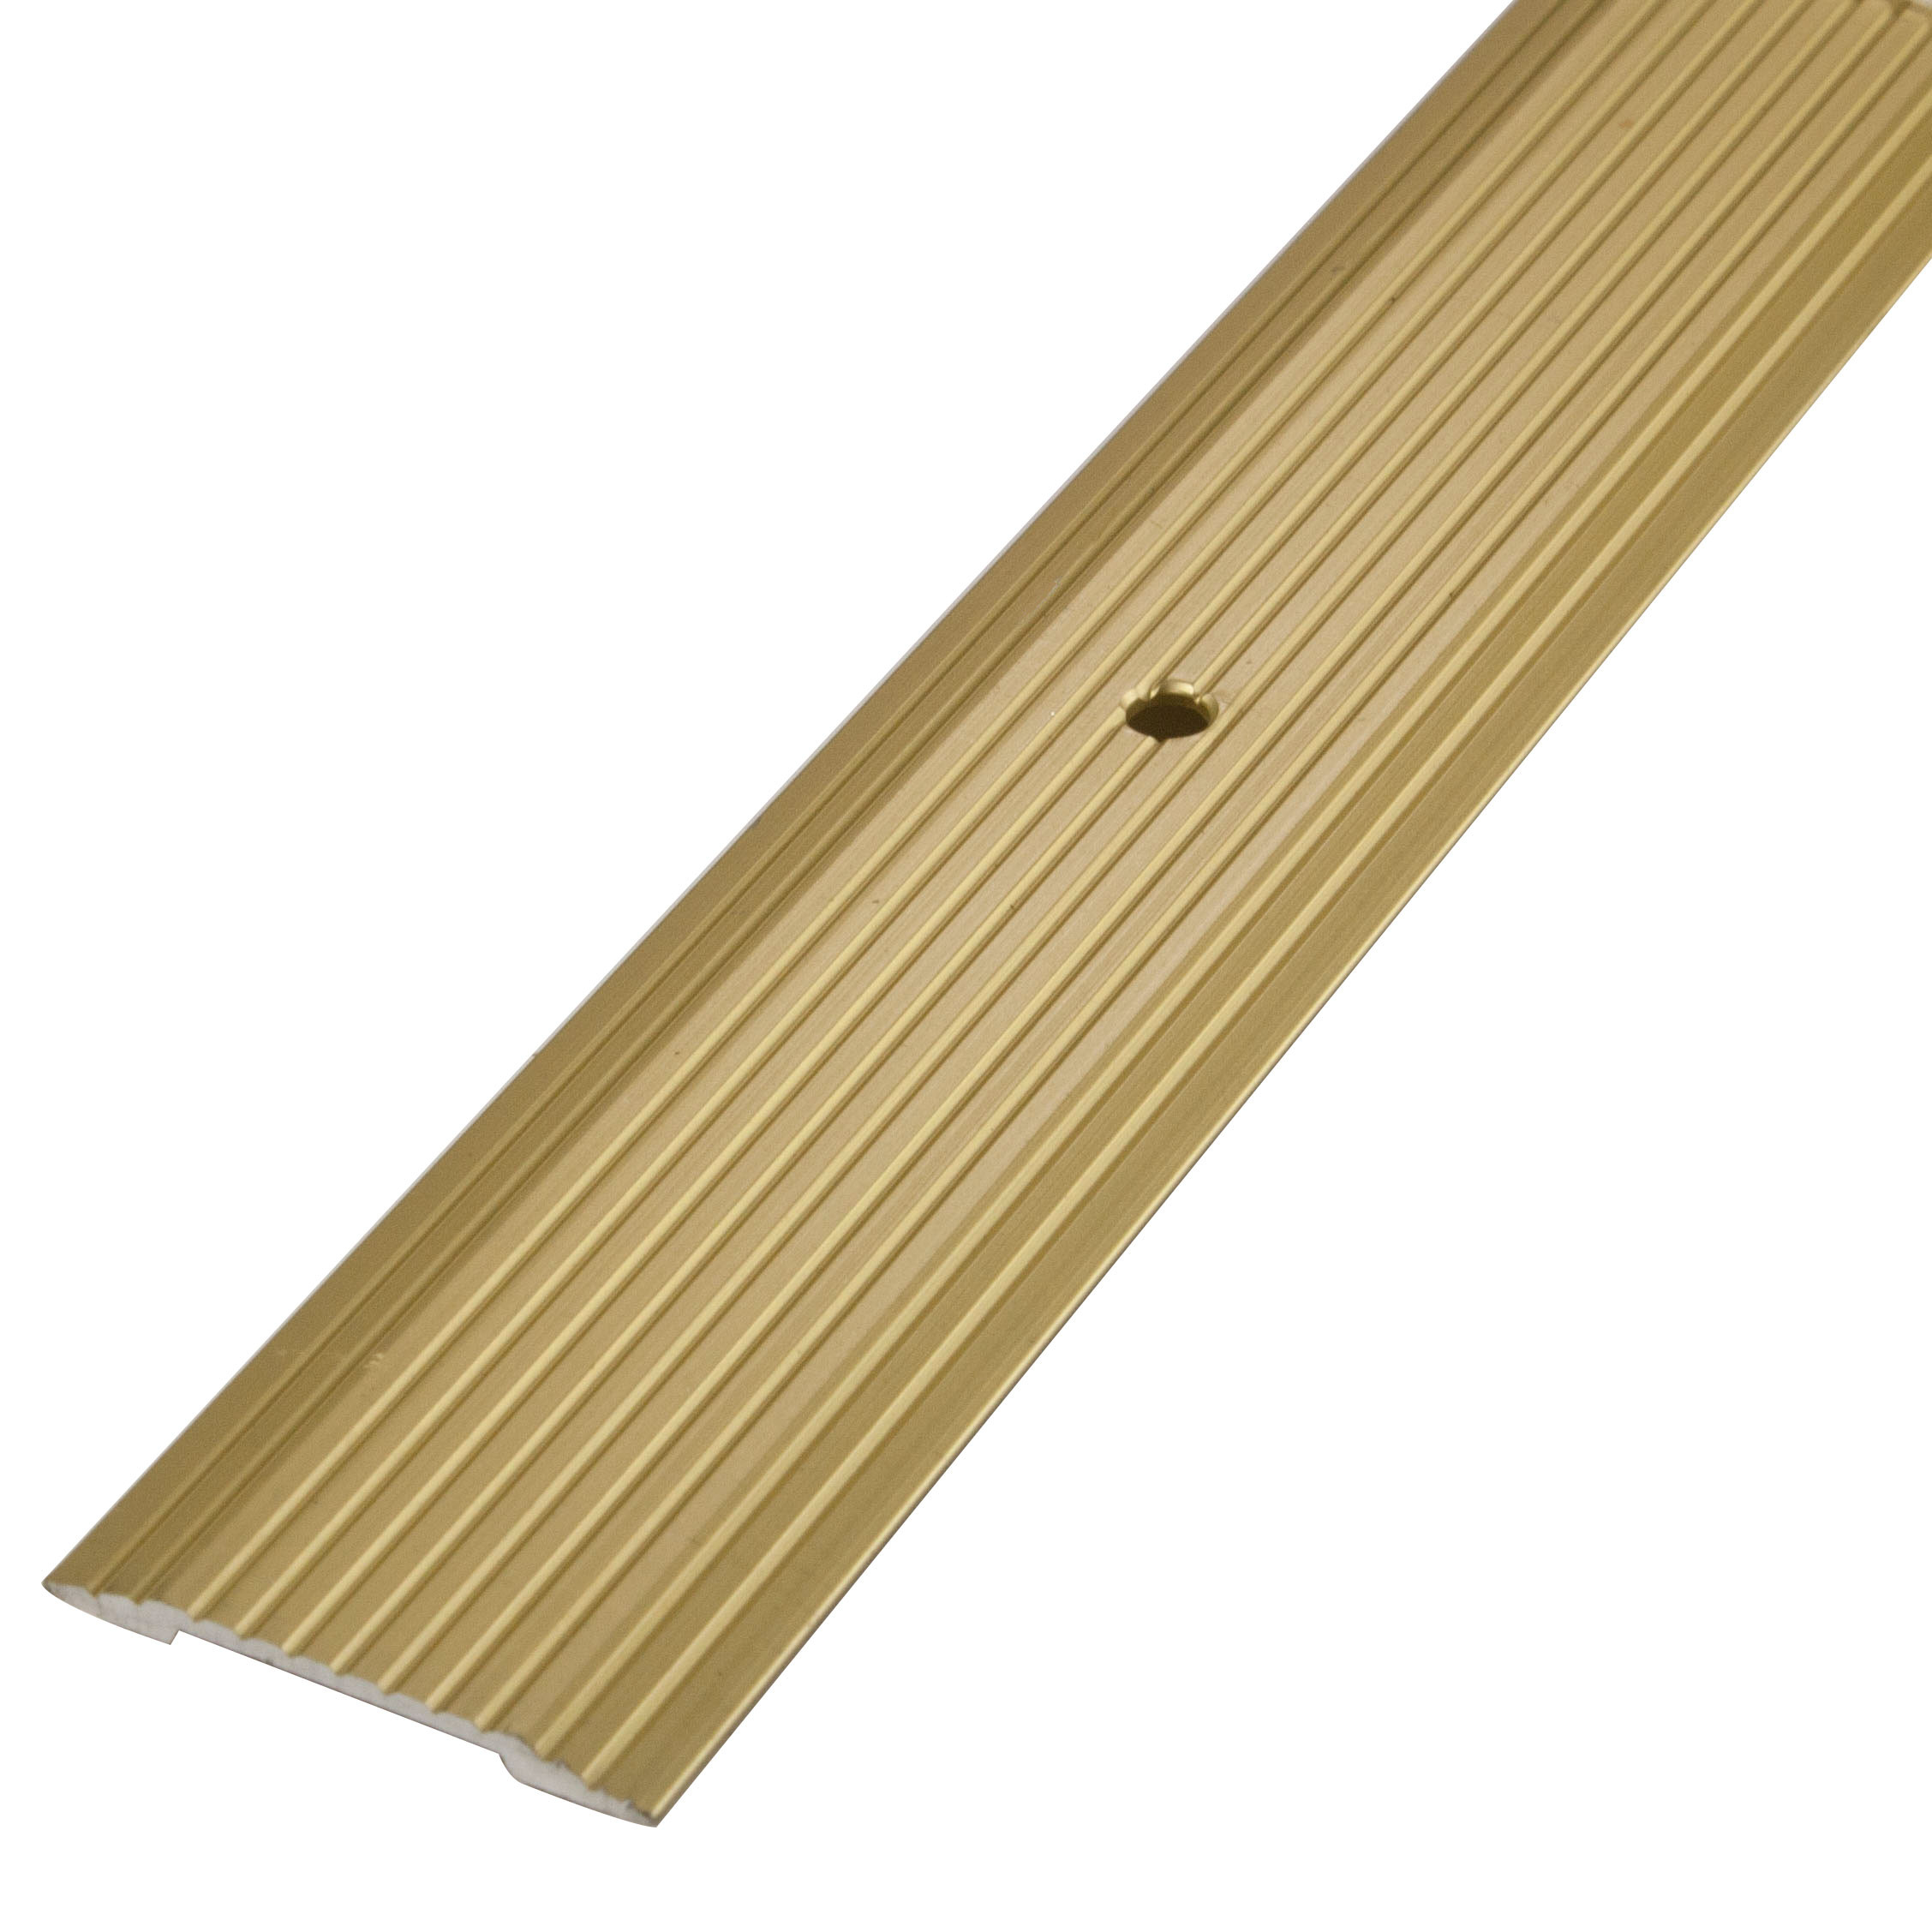 Thermwell HFB Frost King By Inch Gold Seam Binder - 6 inch floor trim